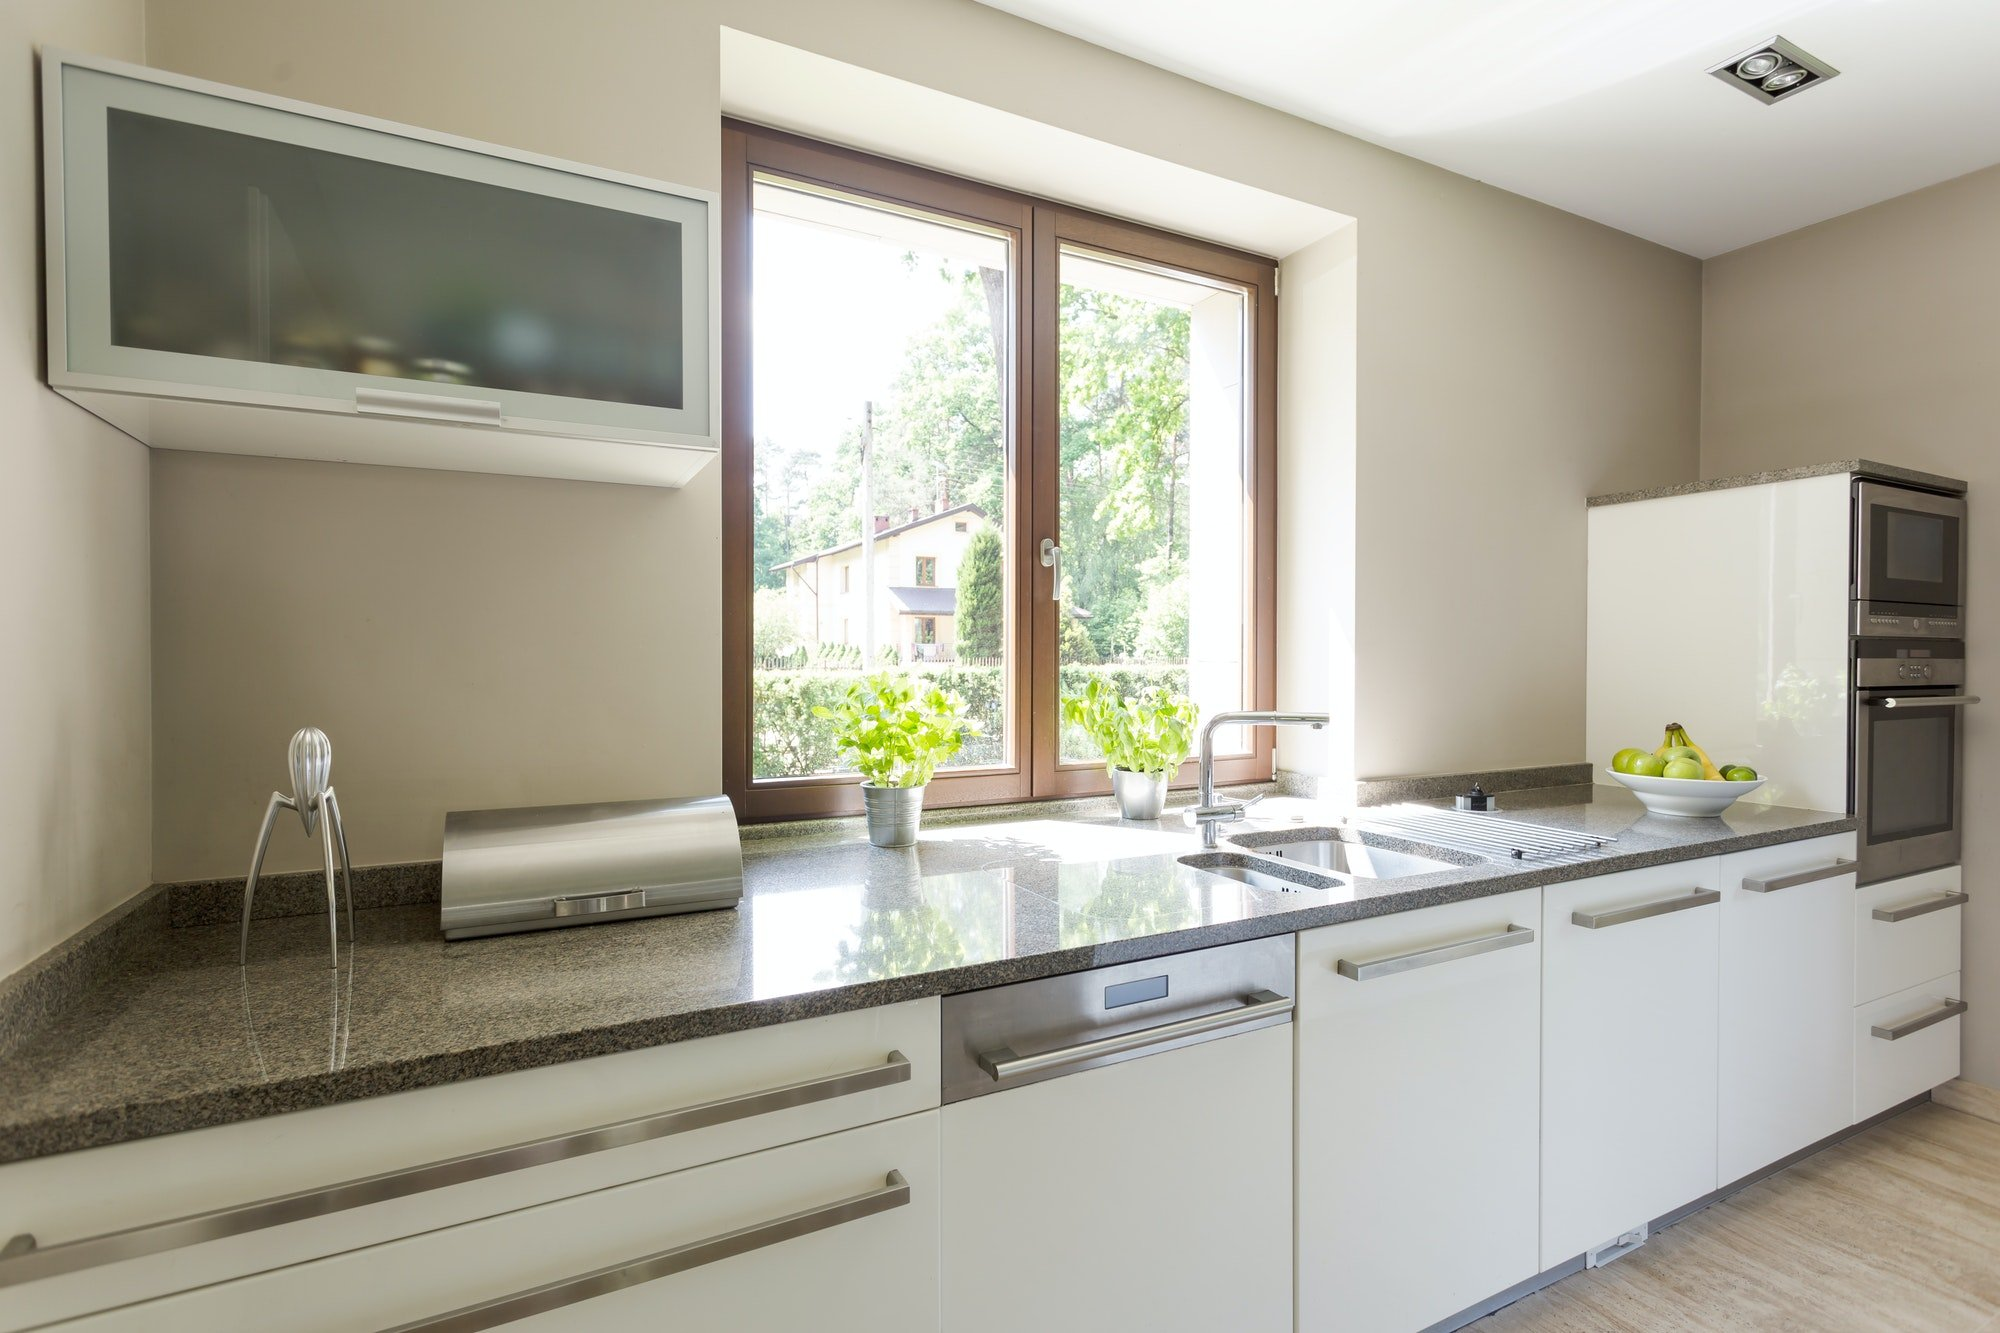 Bright kitchen with modern eguipment